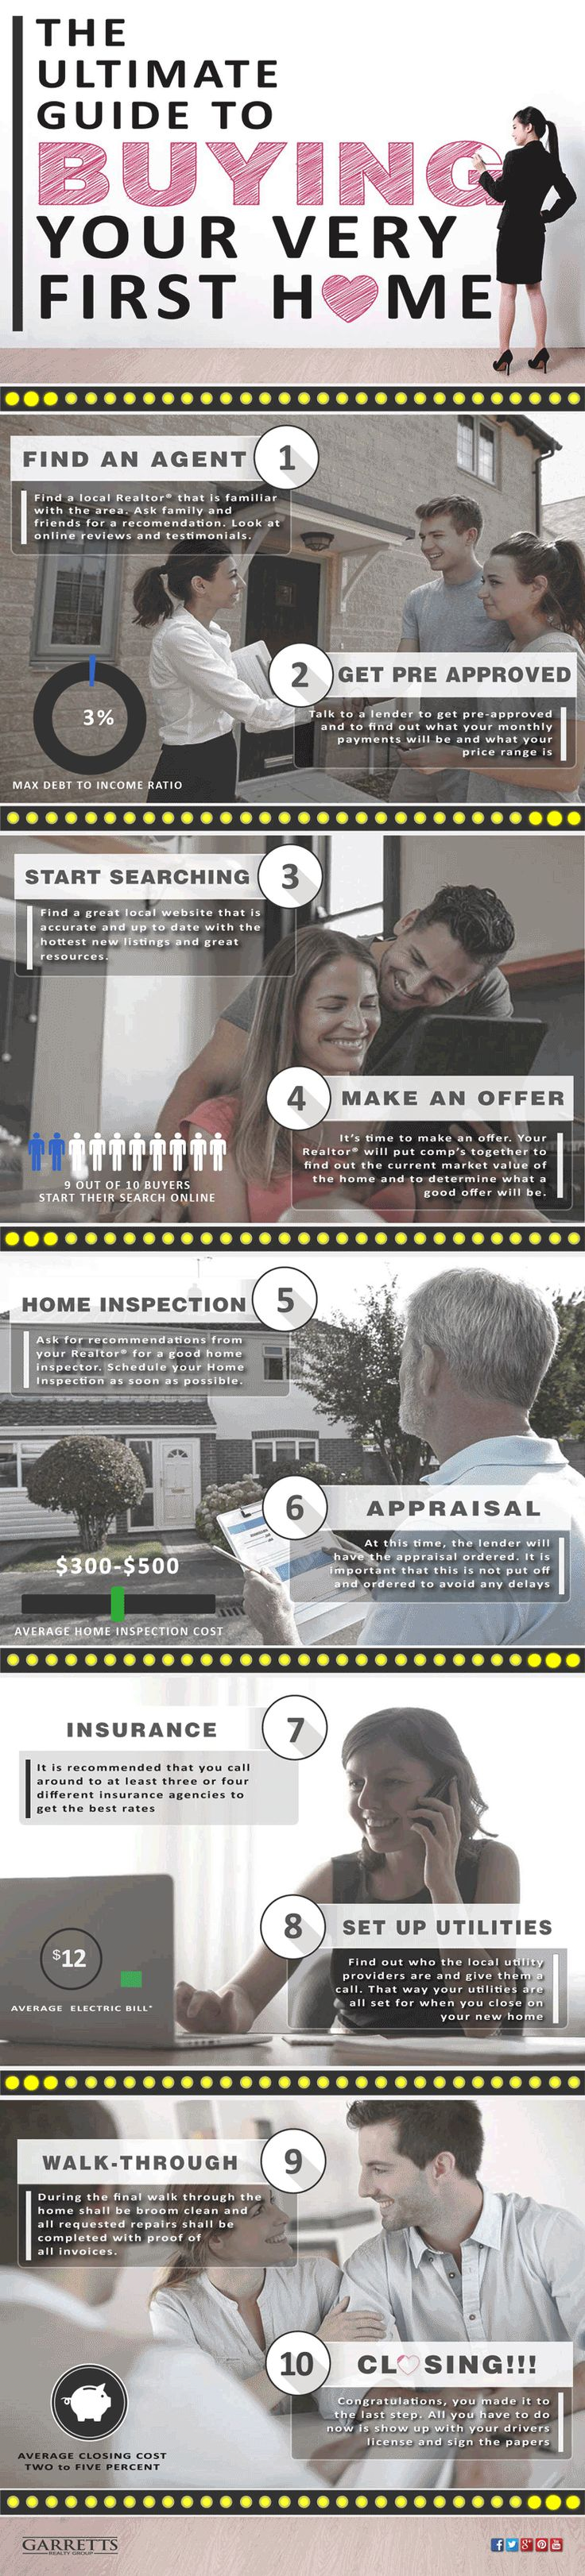 25+ Best Ideas About House Inspection On Pinterest  Houses To Buy, Buying  First Home And Home Buying Process